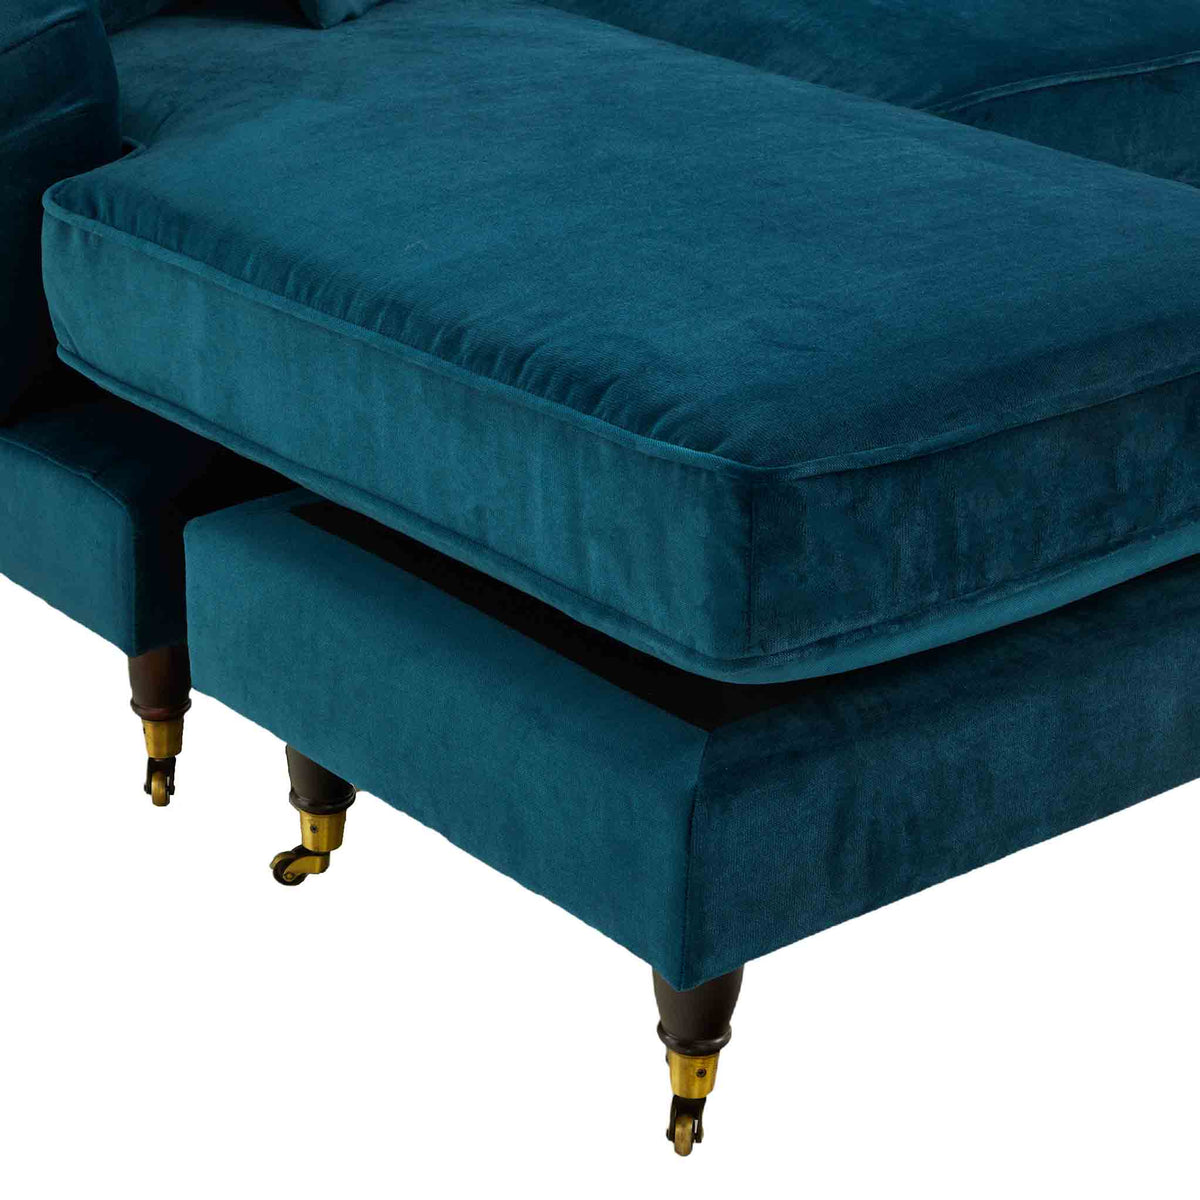 close up of the stool and chaise cushion on the Piper Peacock Velvet Corner Chaise Sofa from Roseland Furniture